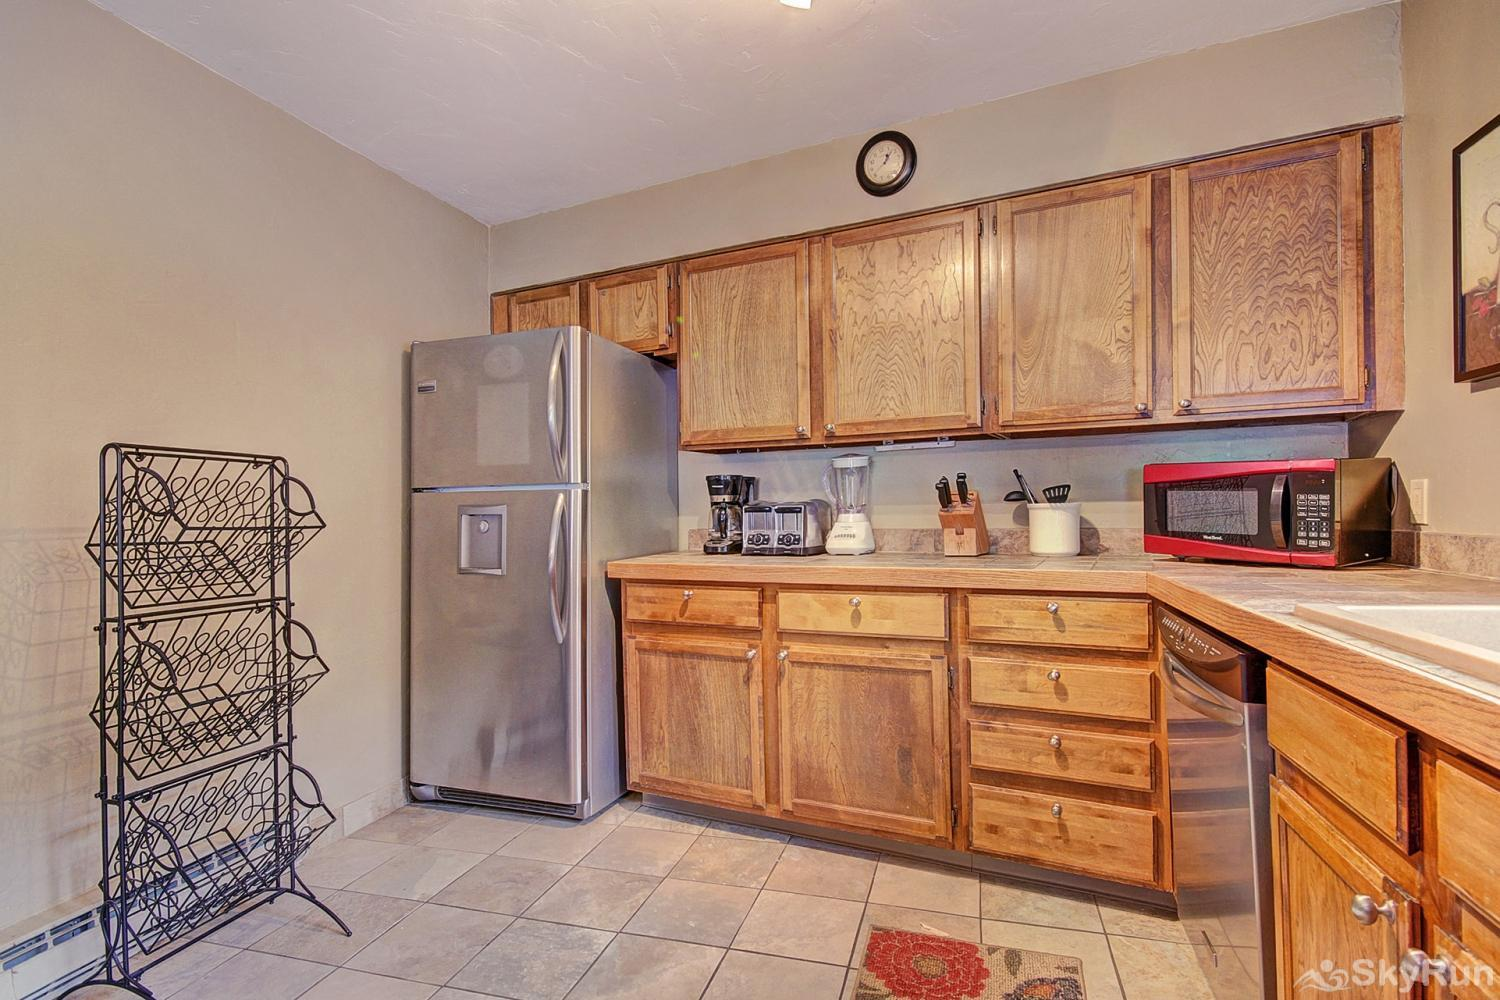 Sundowner II 201 Alternate view of fully equipped kitchen